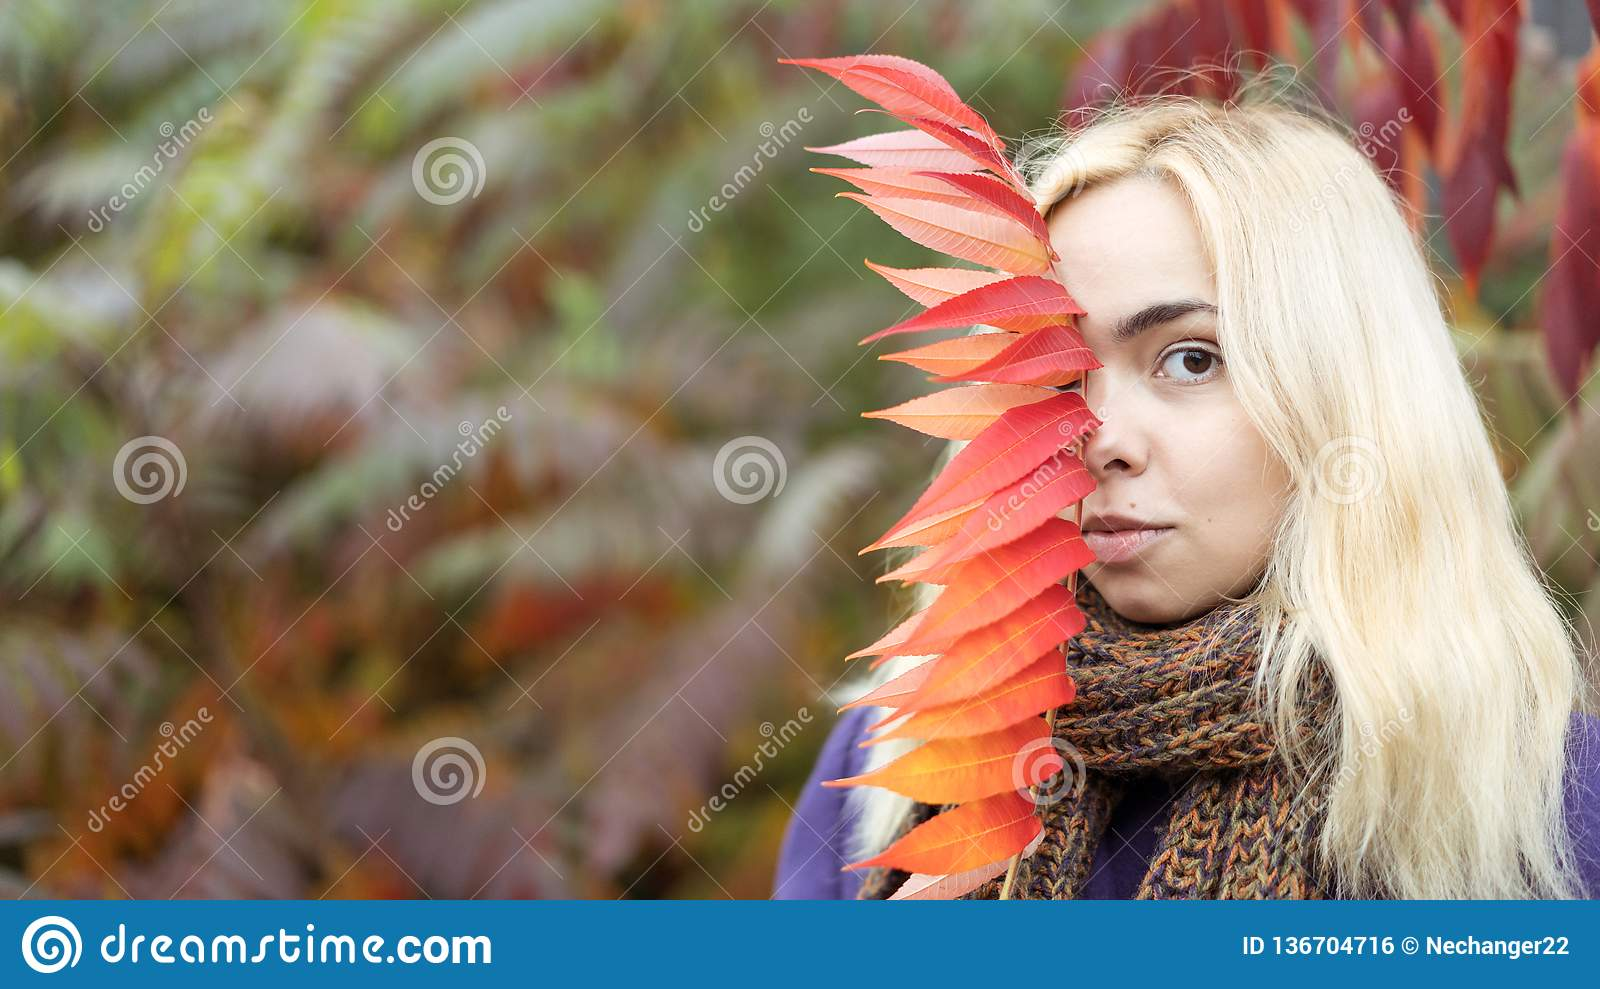 Half length portrait of young female in the autumn park with colorful leaves